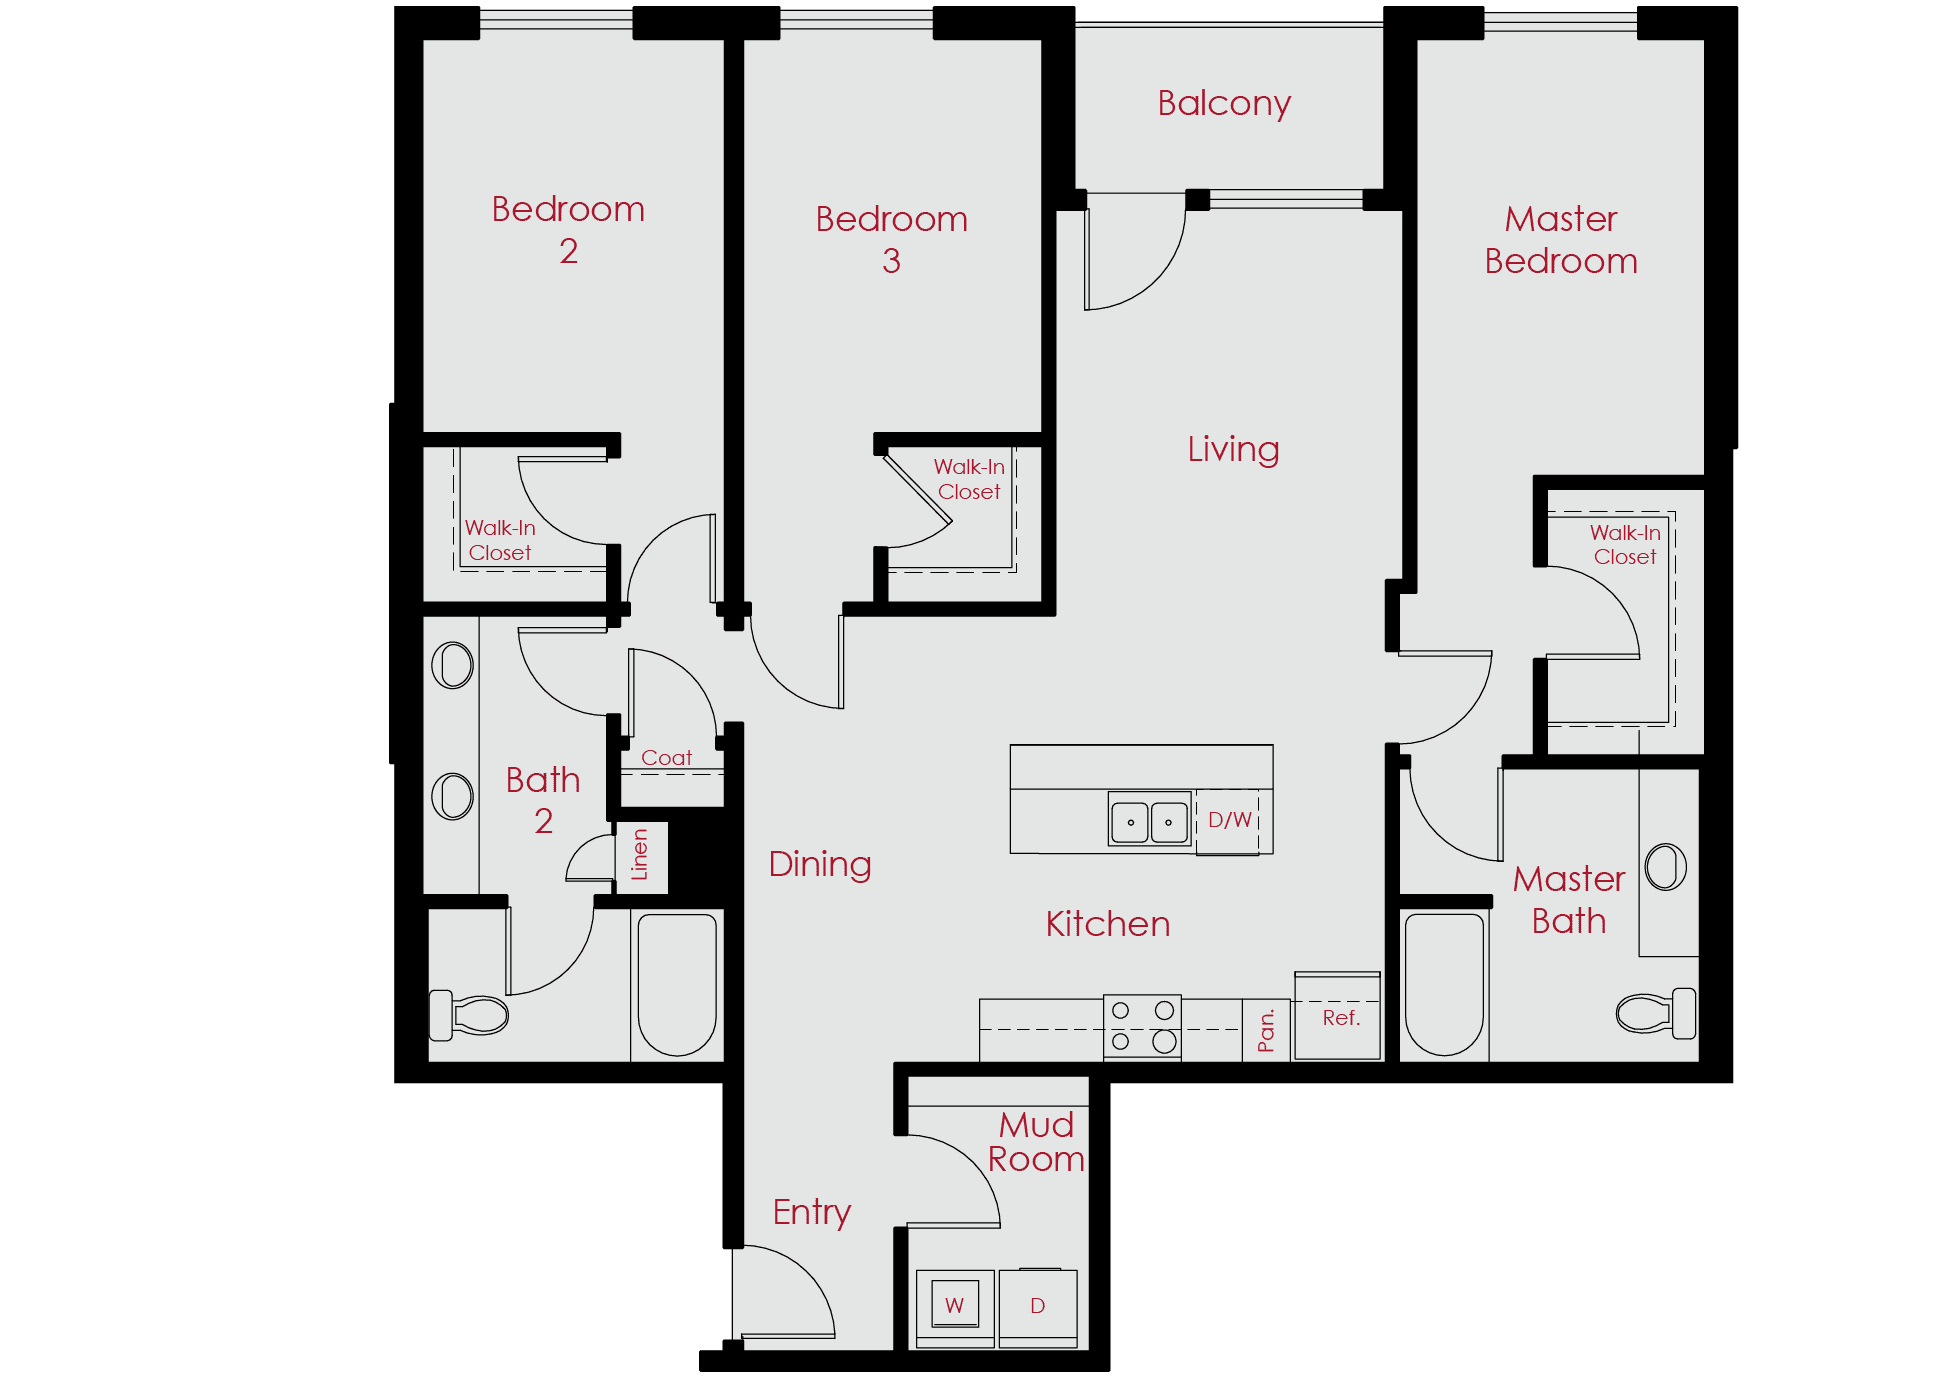 Luxury 1 3 Bedroom Apartments for Rent in Denver CO